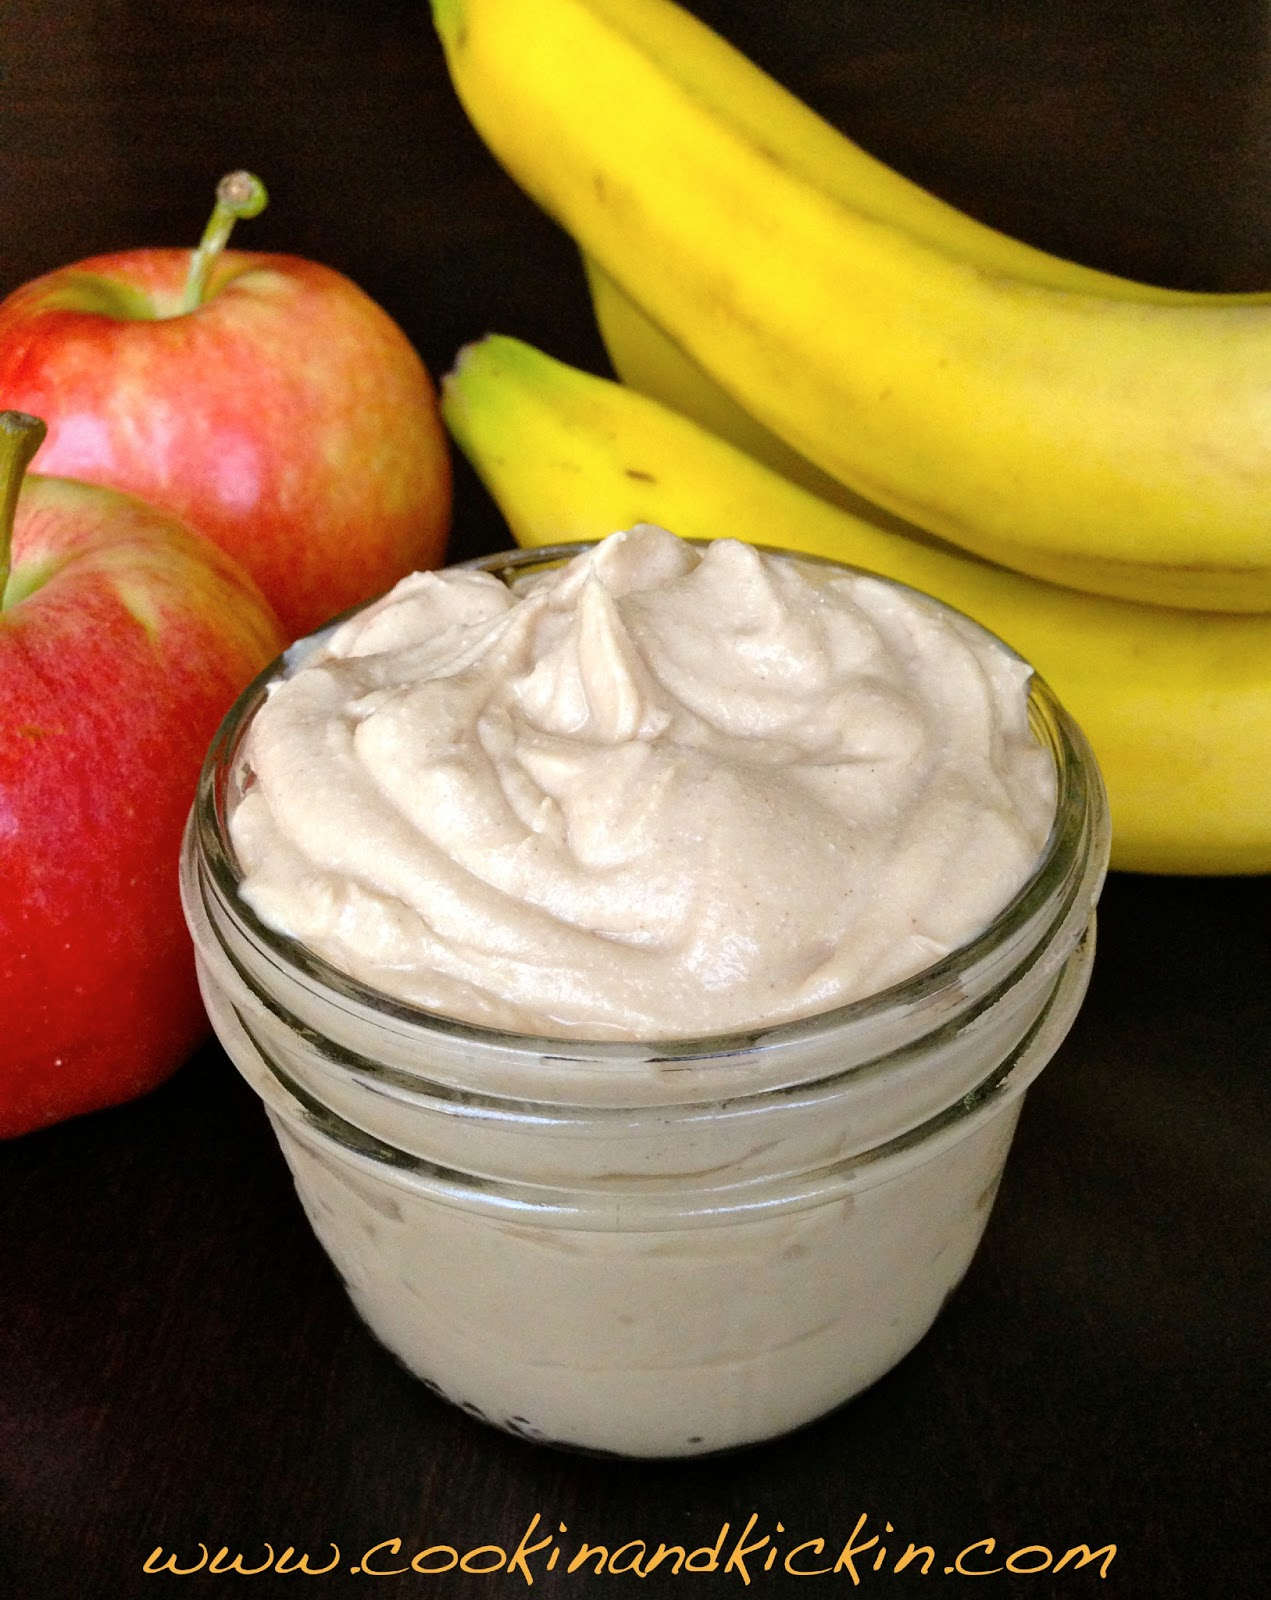 Healthy Peanut Butter Dip | Cookin' And Kickin'